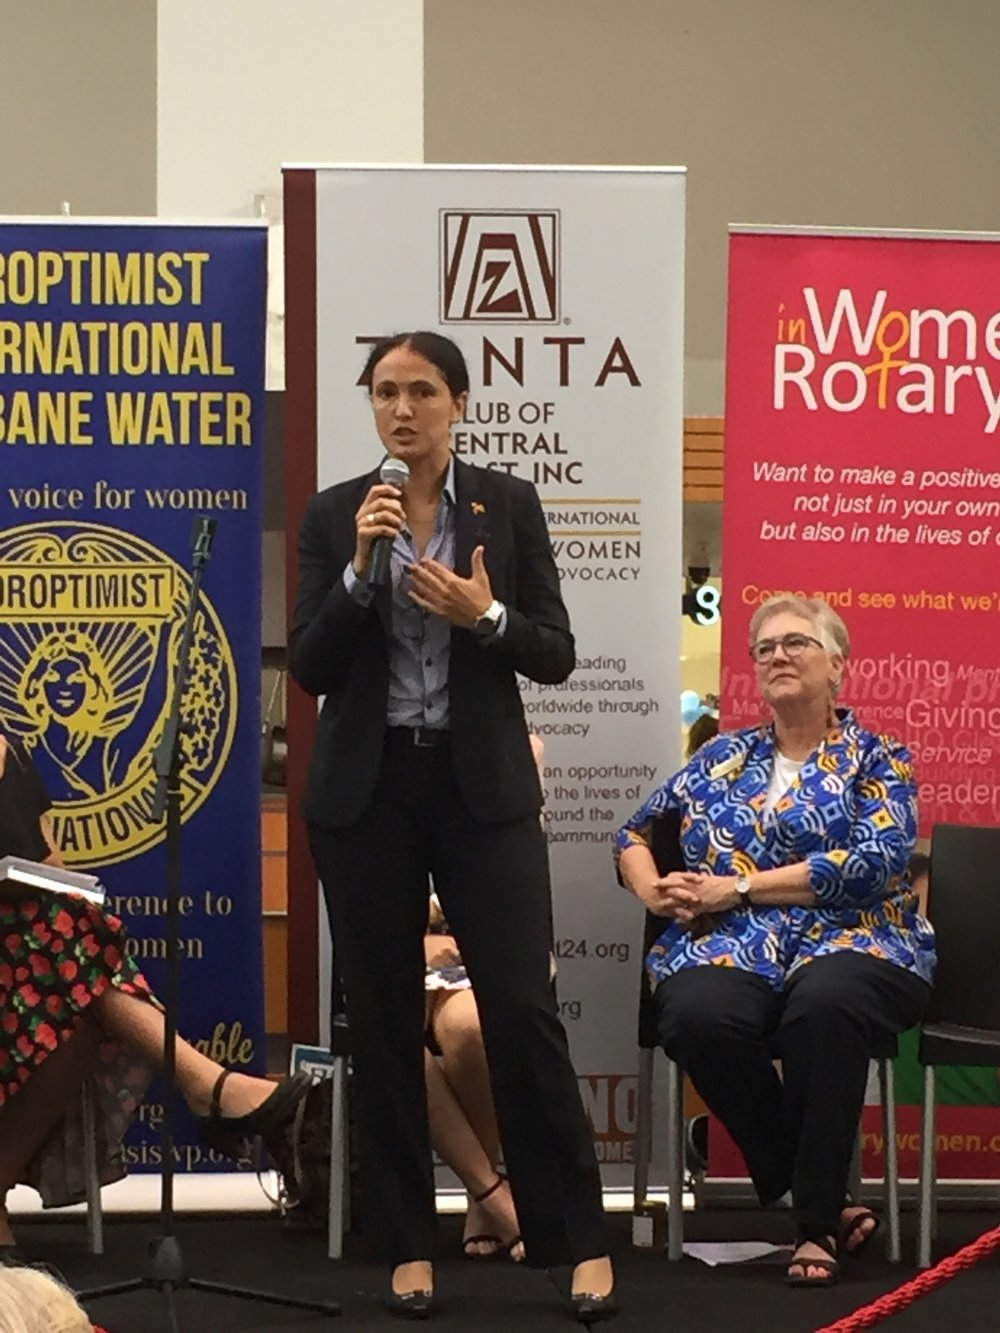 Lindsay Stanford (Blakworks) speaking at The International Women's Day 2017 event at Erina Fair